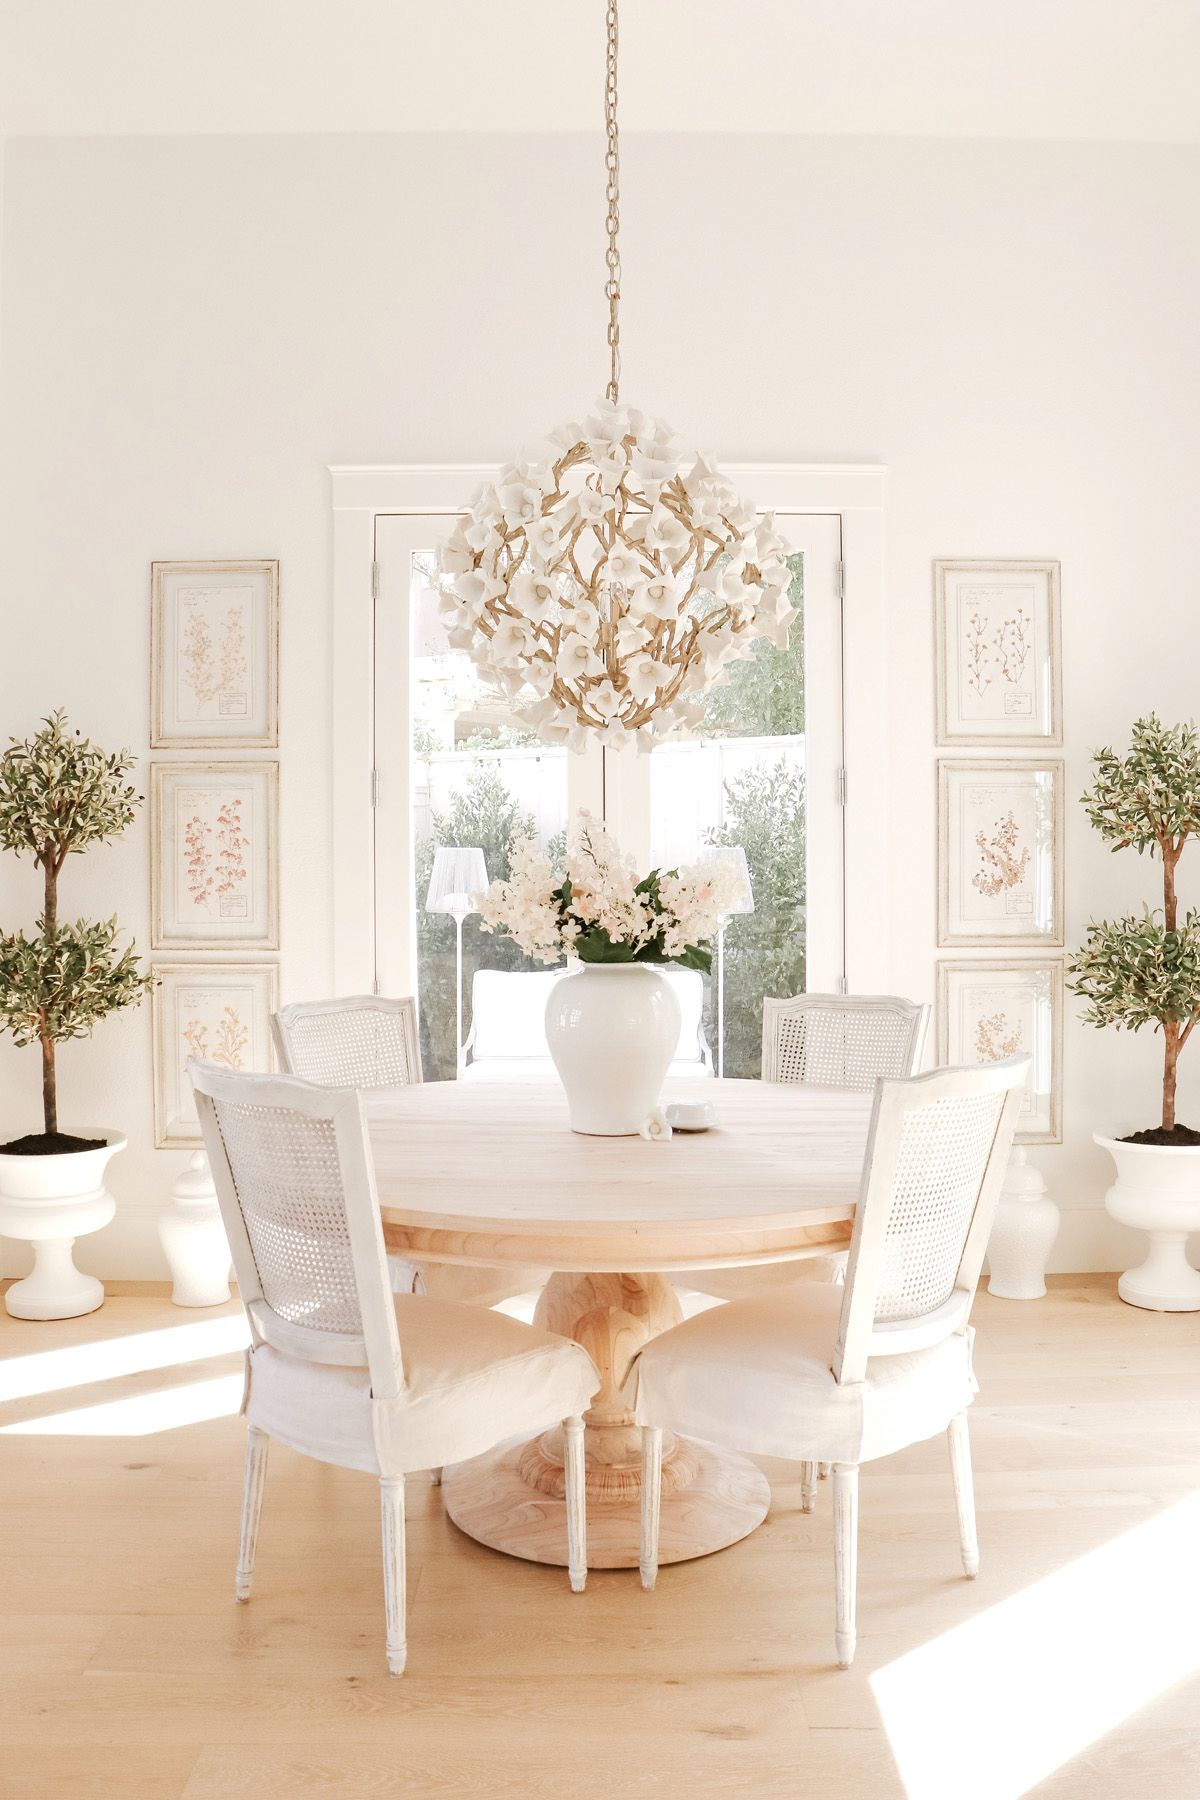 French Inspired Pedestal Dining Table Obsessed With This Dining Room Look Kristy Wicks White Dining Room Modern Dining Room Dining Room Design